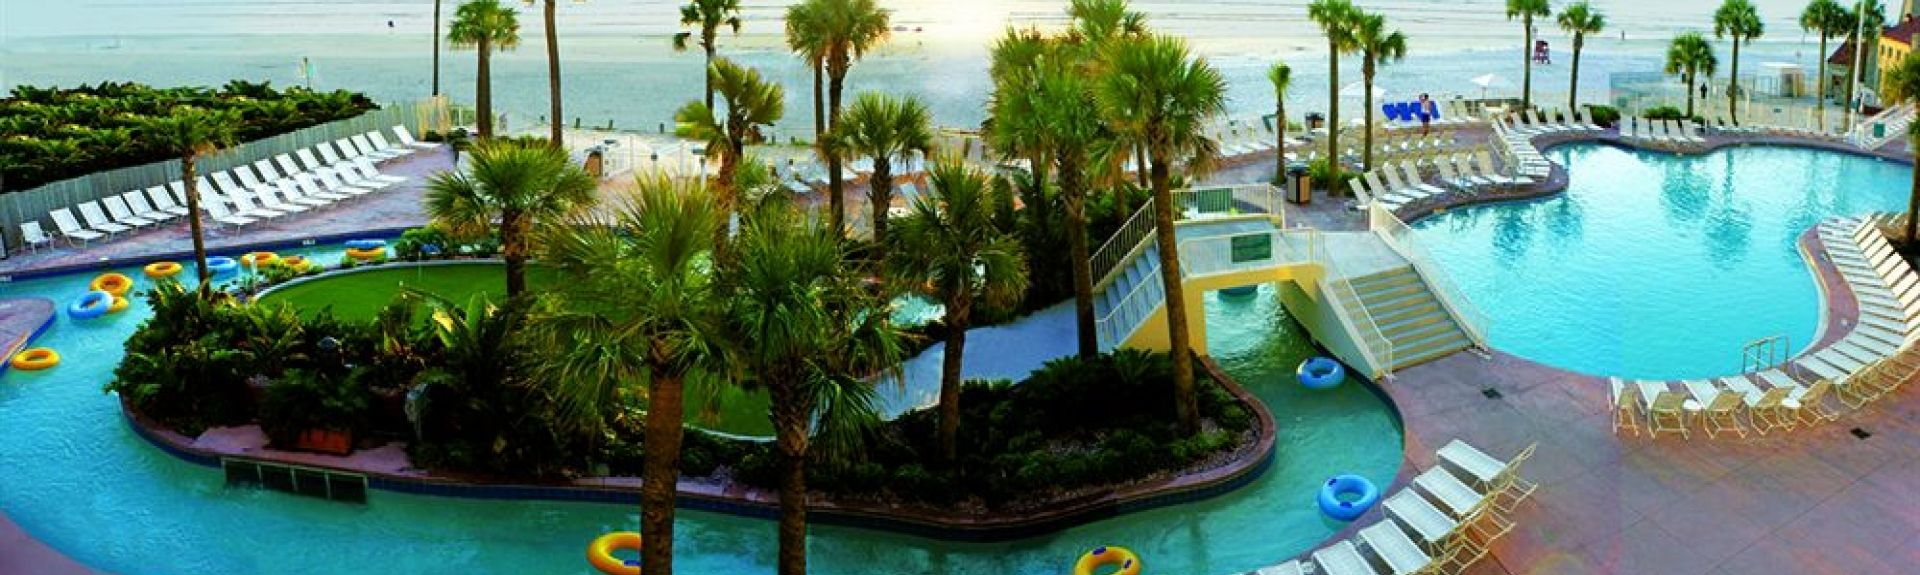 Wyndham Ocean Walk, Daytona Beach, Florida, United States of America